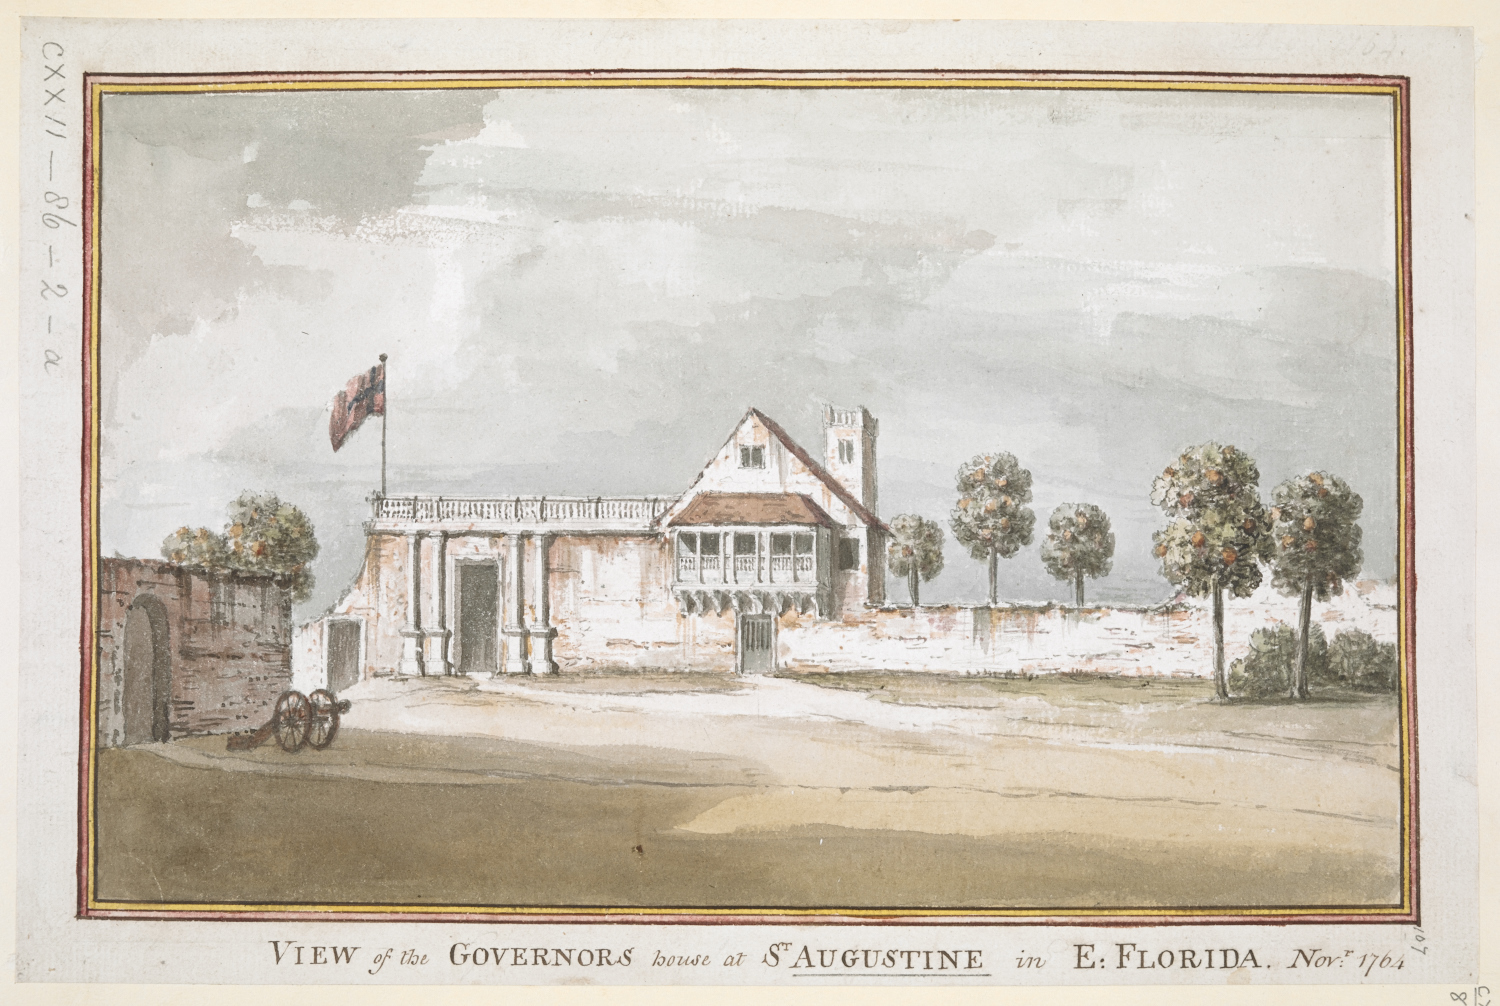 Lord Adam Gordon's View of the Governor's house at St. Augustine in East Florida